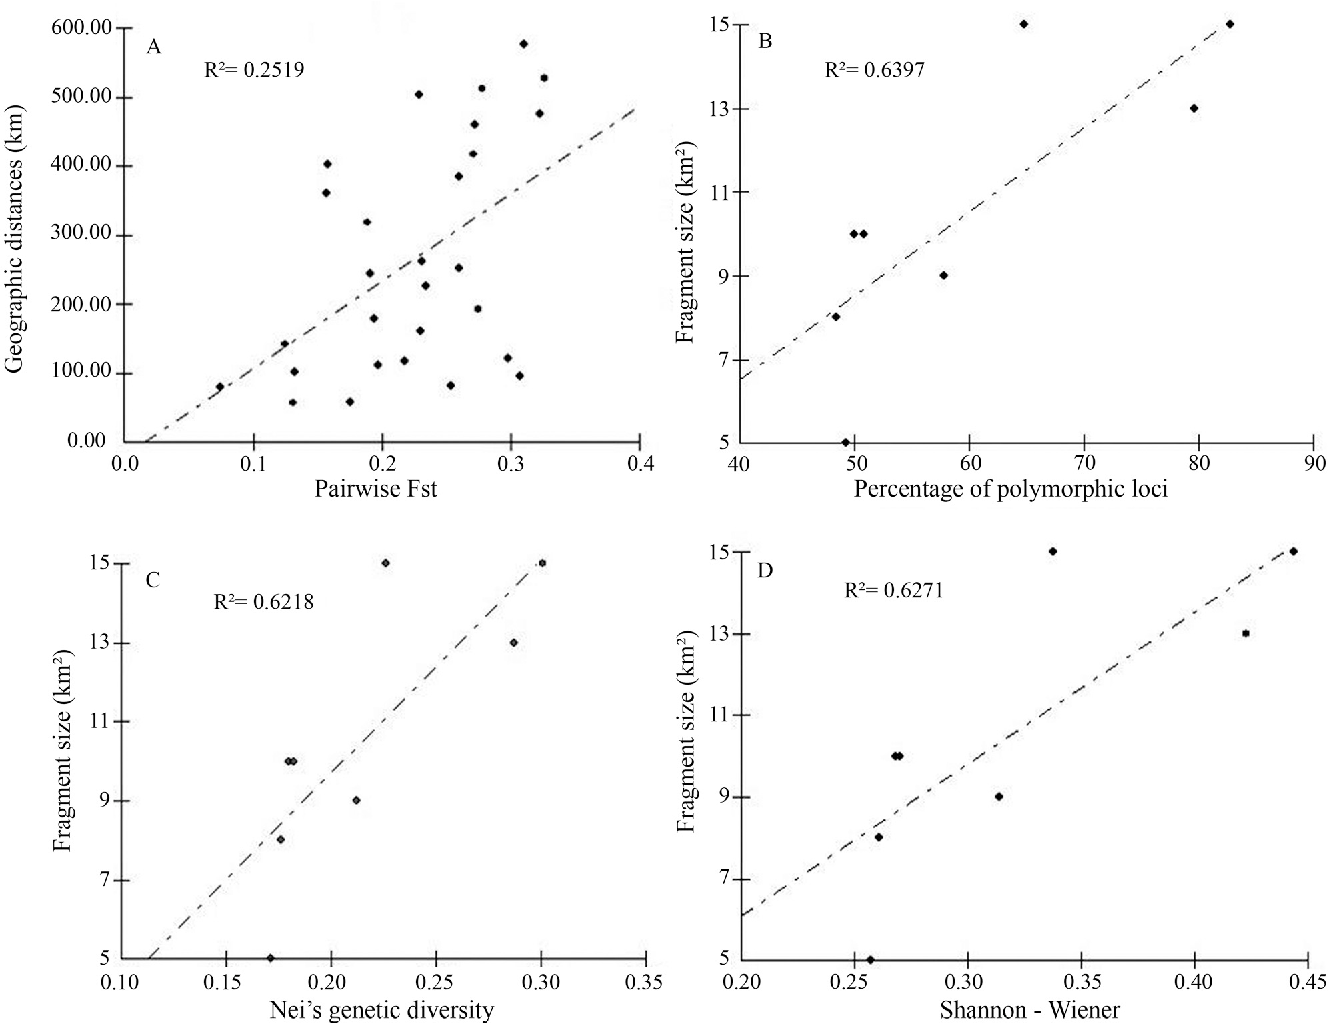 Figure 3 - Pearson's correlations for (A) geographic distances against pairwise Fst; (B) fragment size against percentage of polymorphic loci; (C) fragment size against Nei's genetic diversity; (D) fragment size against Shannon-Wiener index.